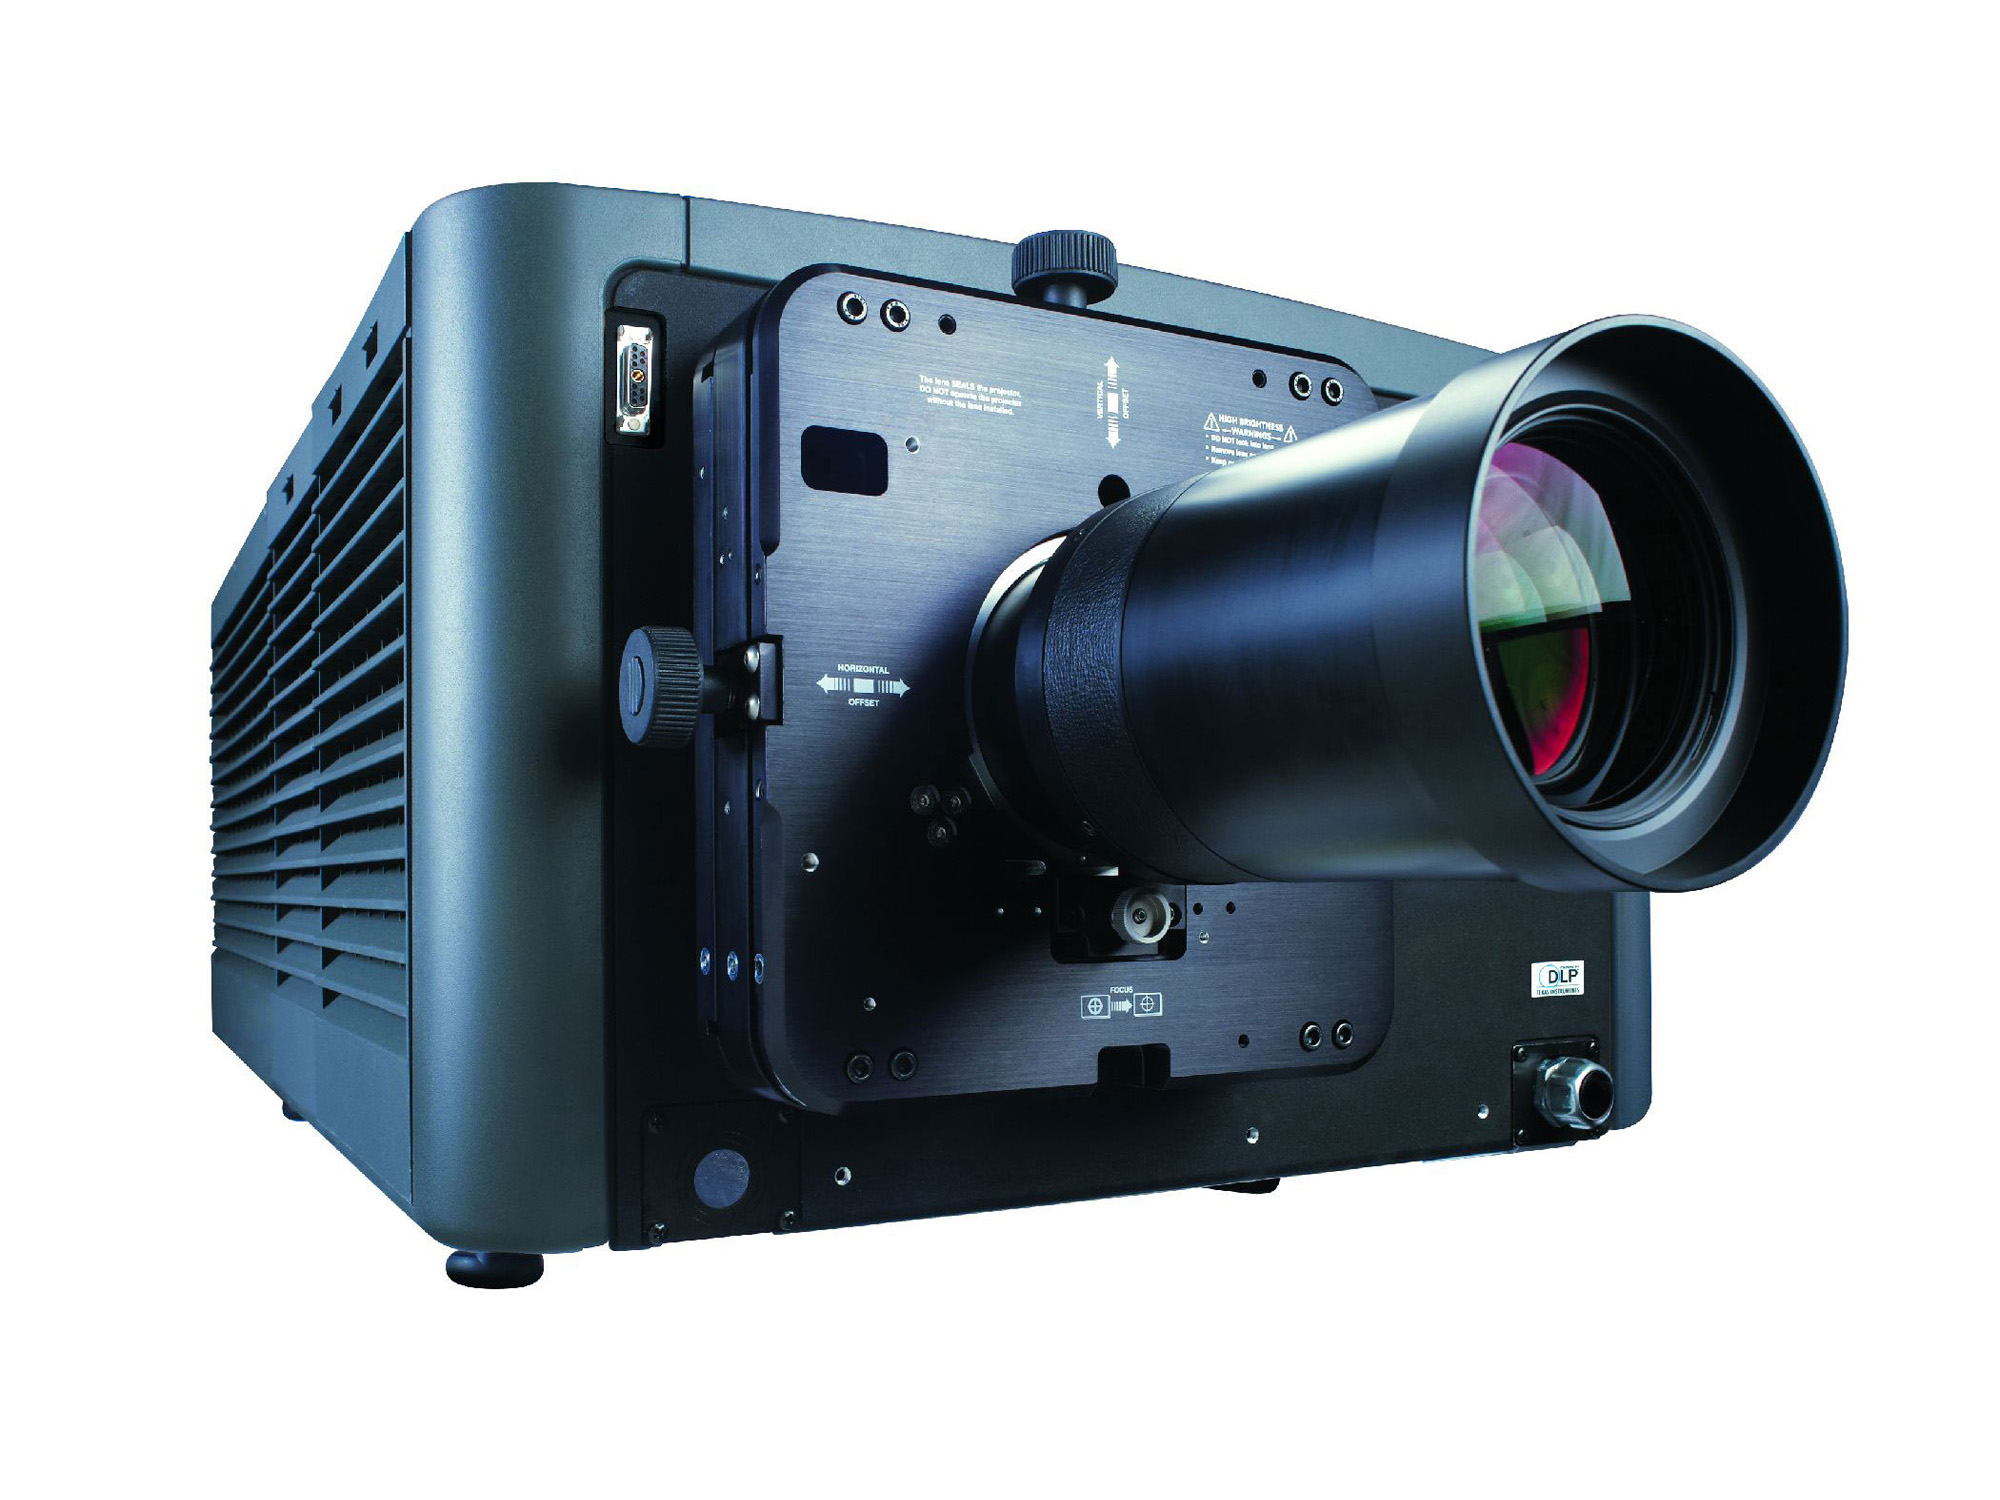 /globalassets/.catalog/products/images/christie-cp2220/gallery/cp2220-digital-cinema-projector-lowleft.jpg